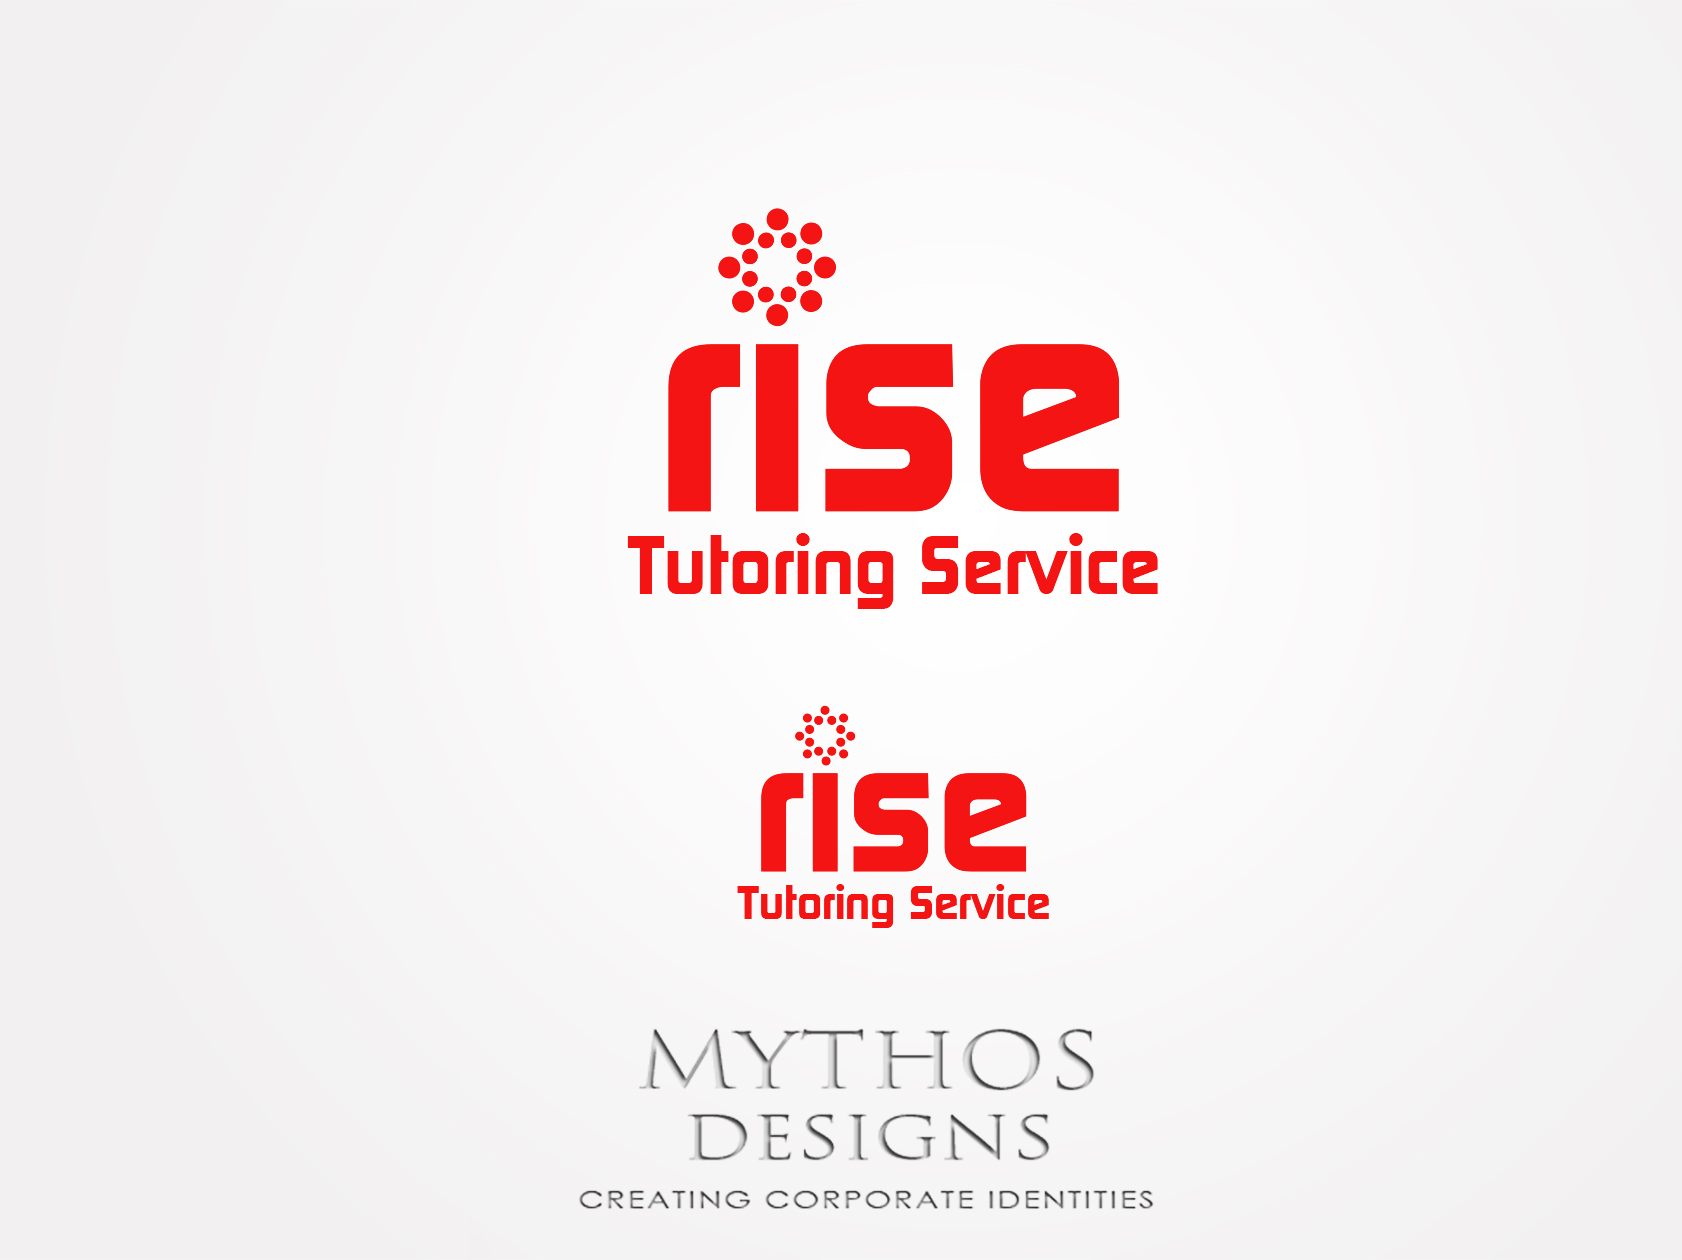 Logo Design by Mythos Designs - Entry No. 145 in the Logo Design Contest Imaginative Logo Design for Rise Tutoring Service.